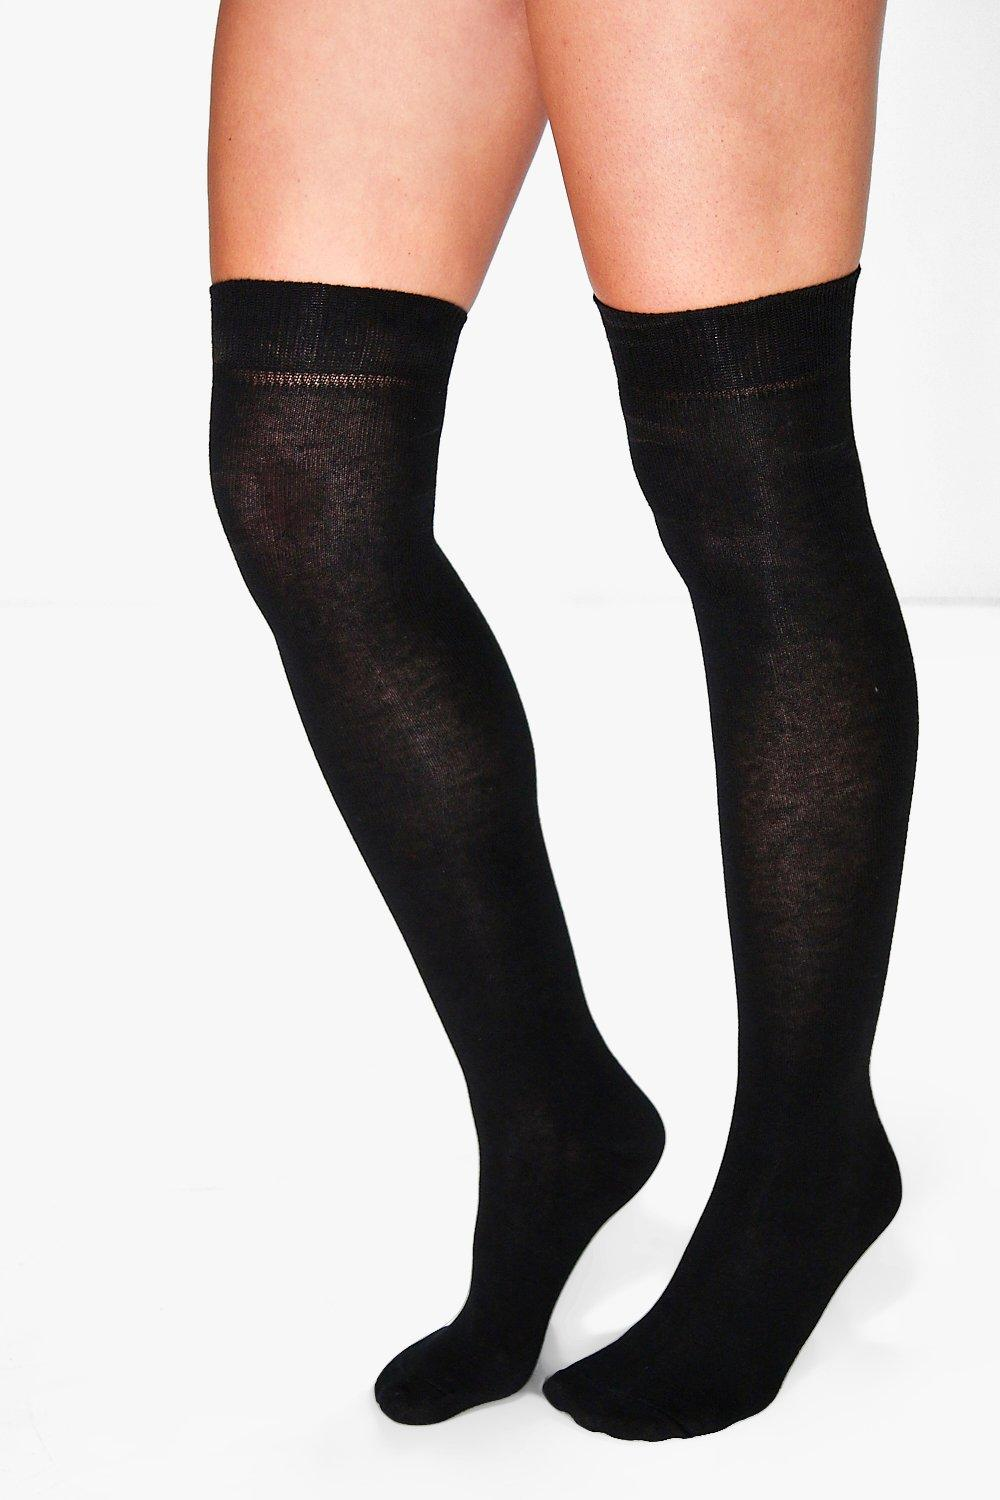 Kara Over Knee High Socks 2 Pack